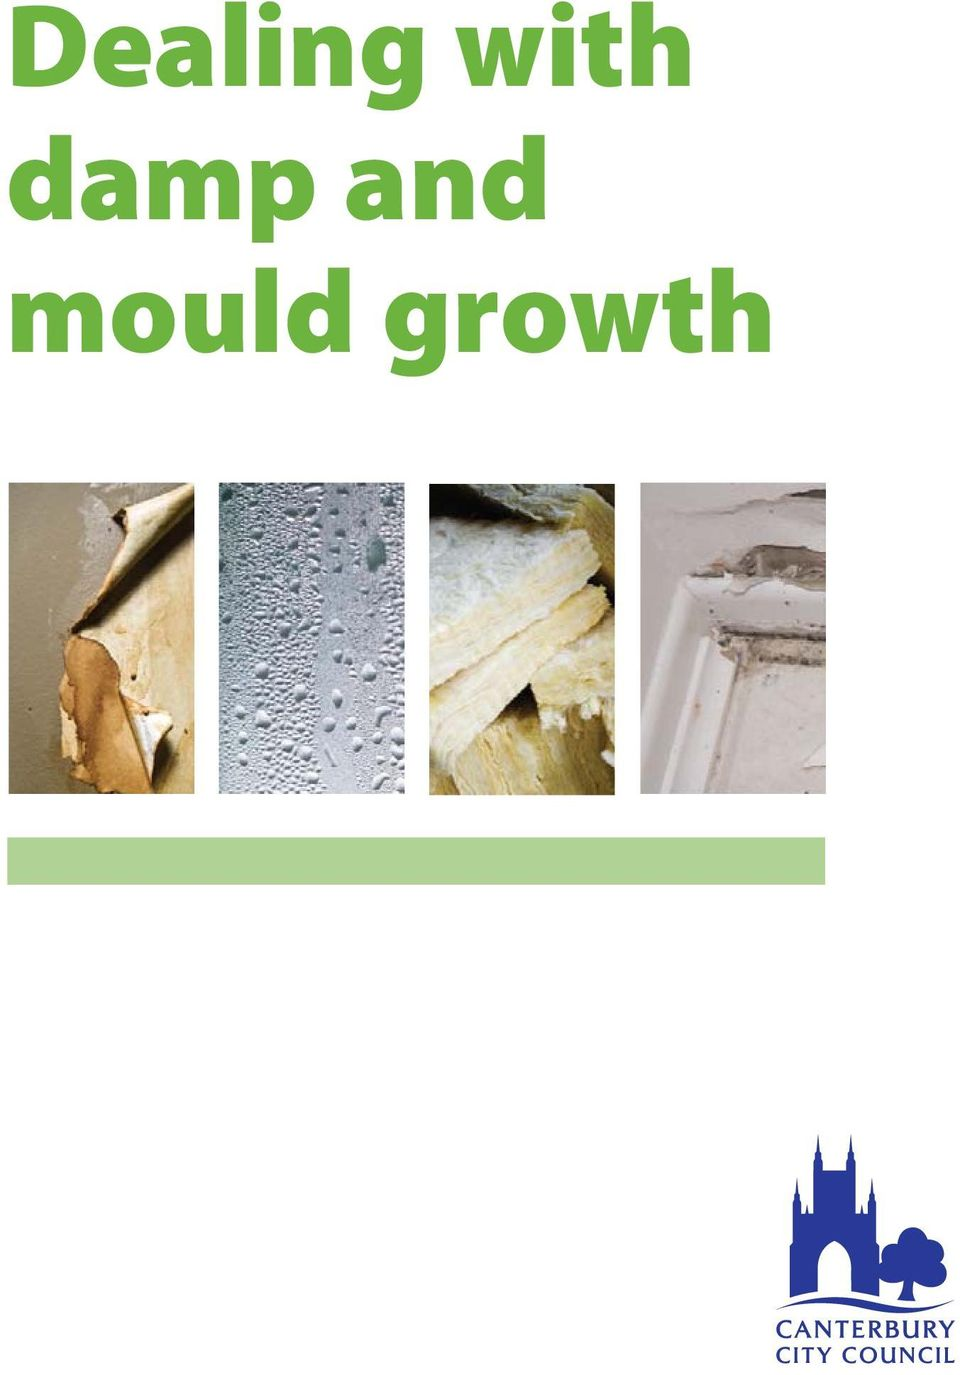 and mould